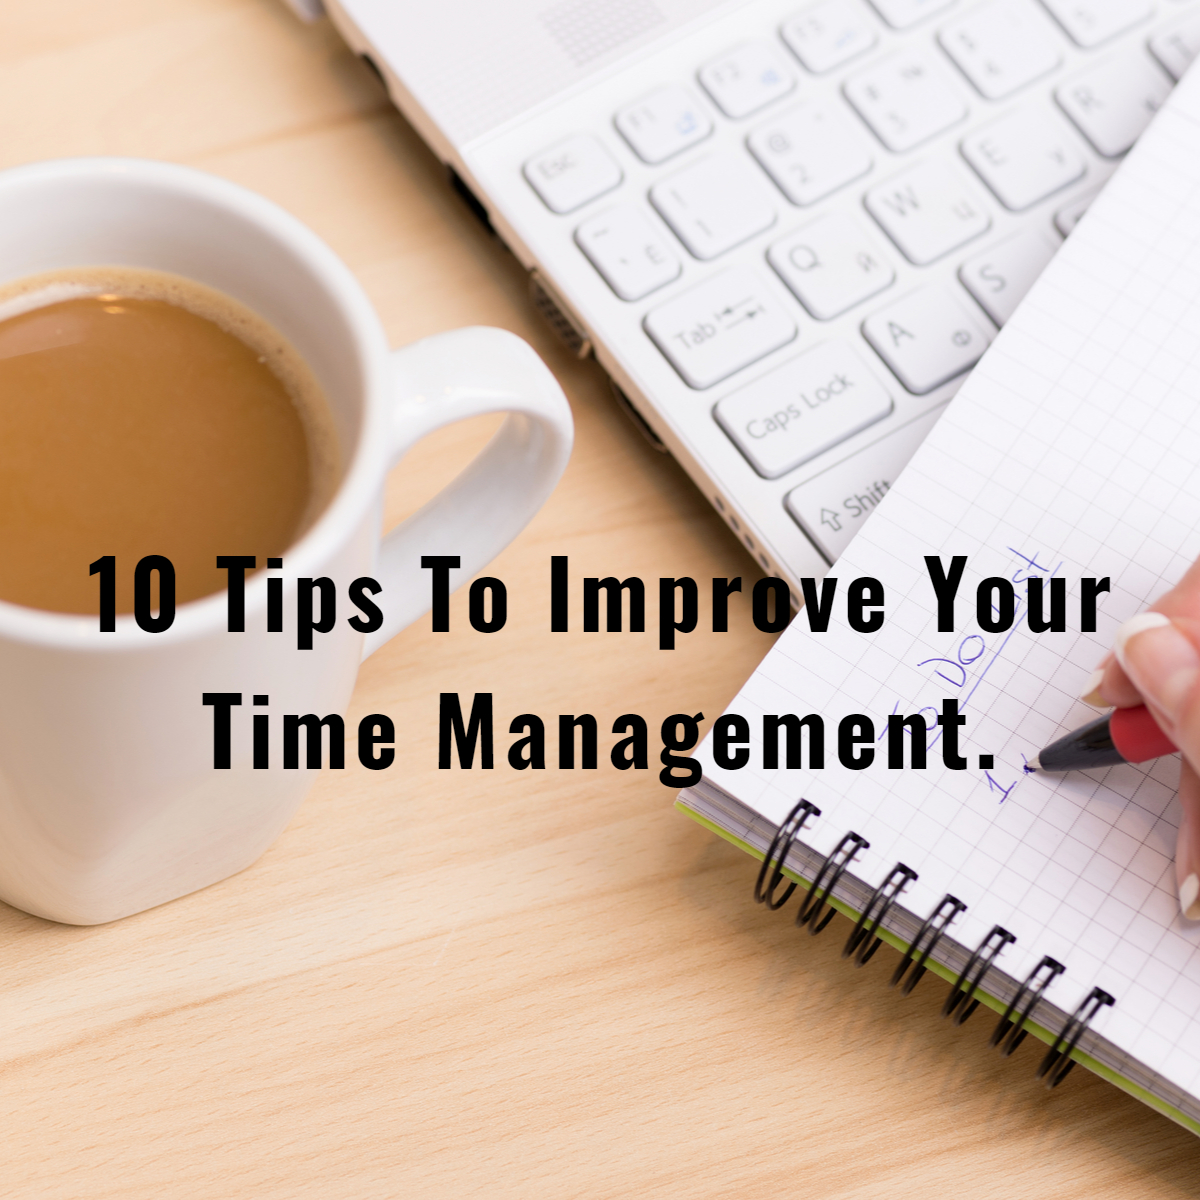 How To Improve Your Time Management. 10 Practical Tips.